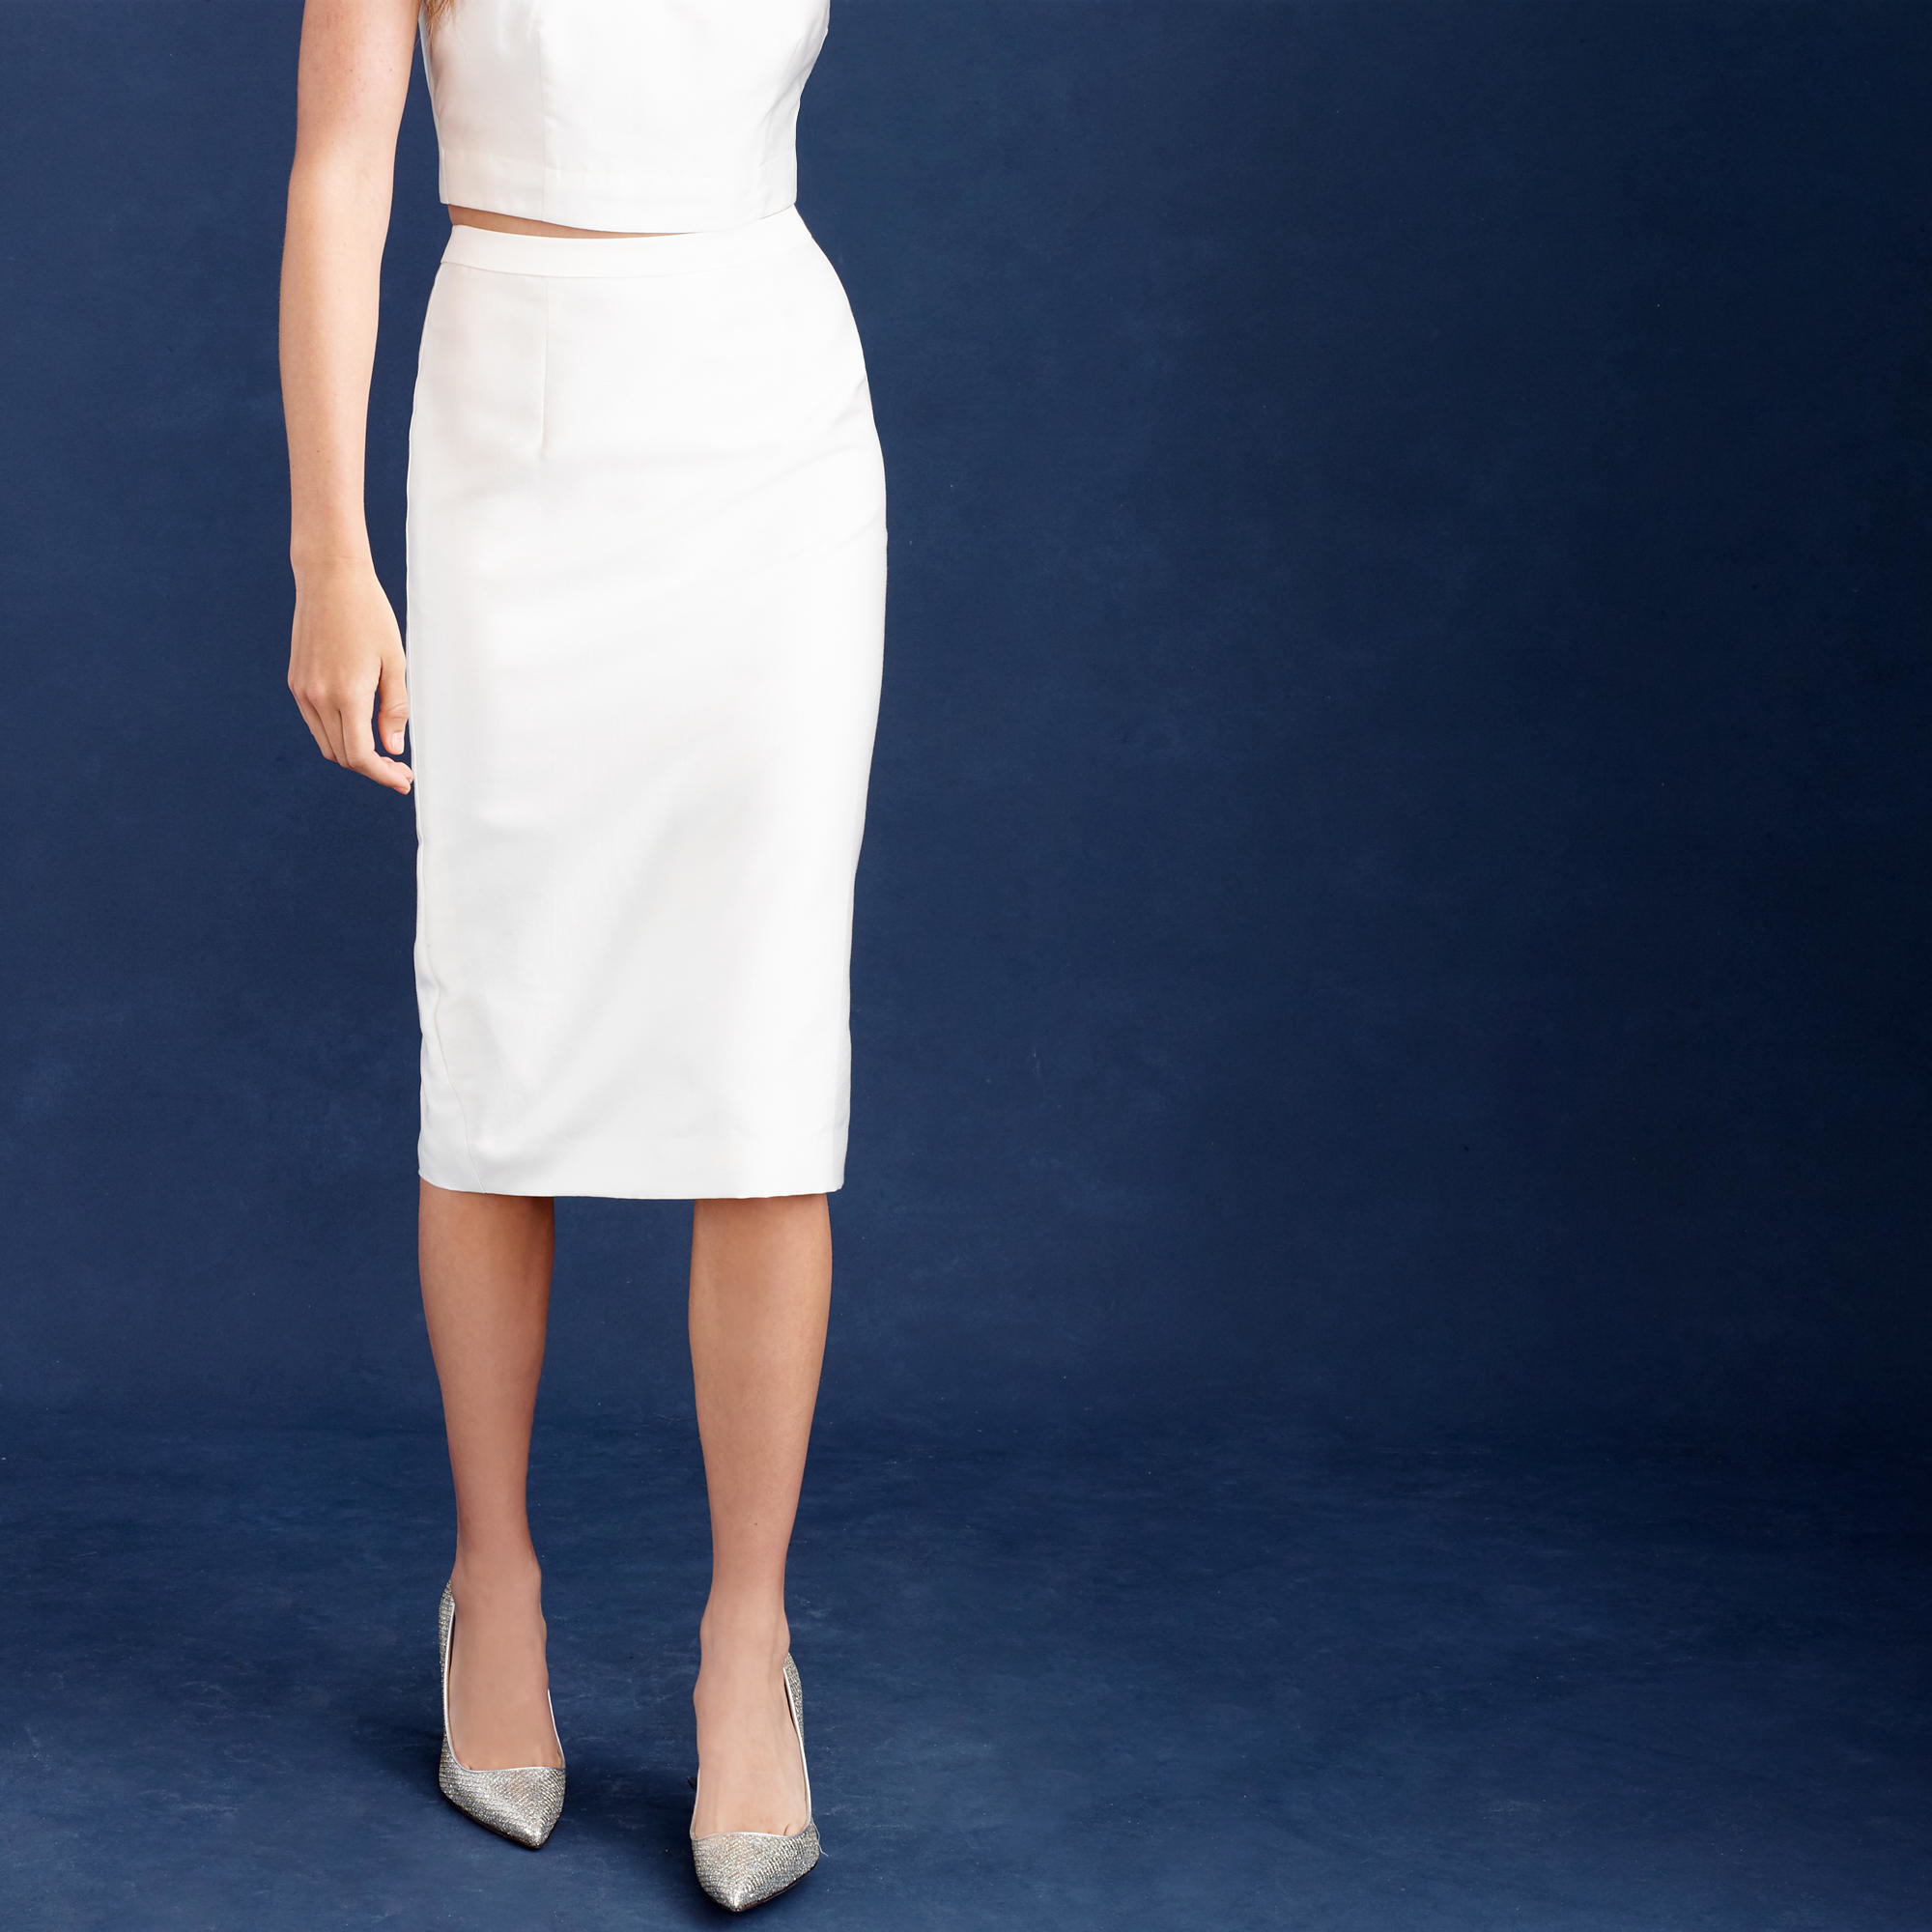 j crew collection pencil skirt in cotton silk twill in